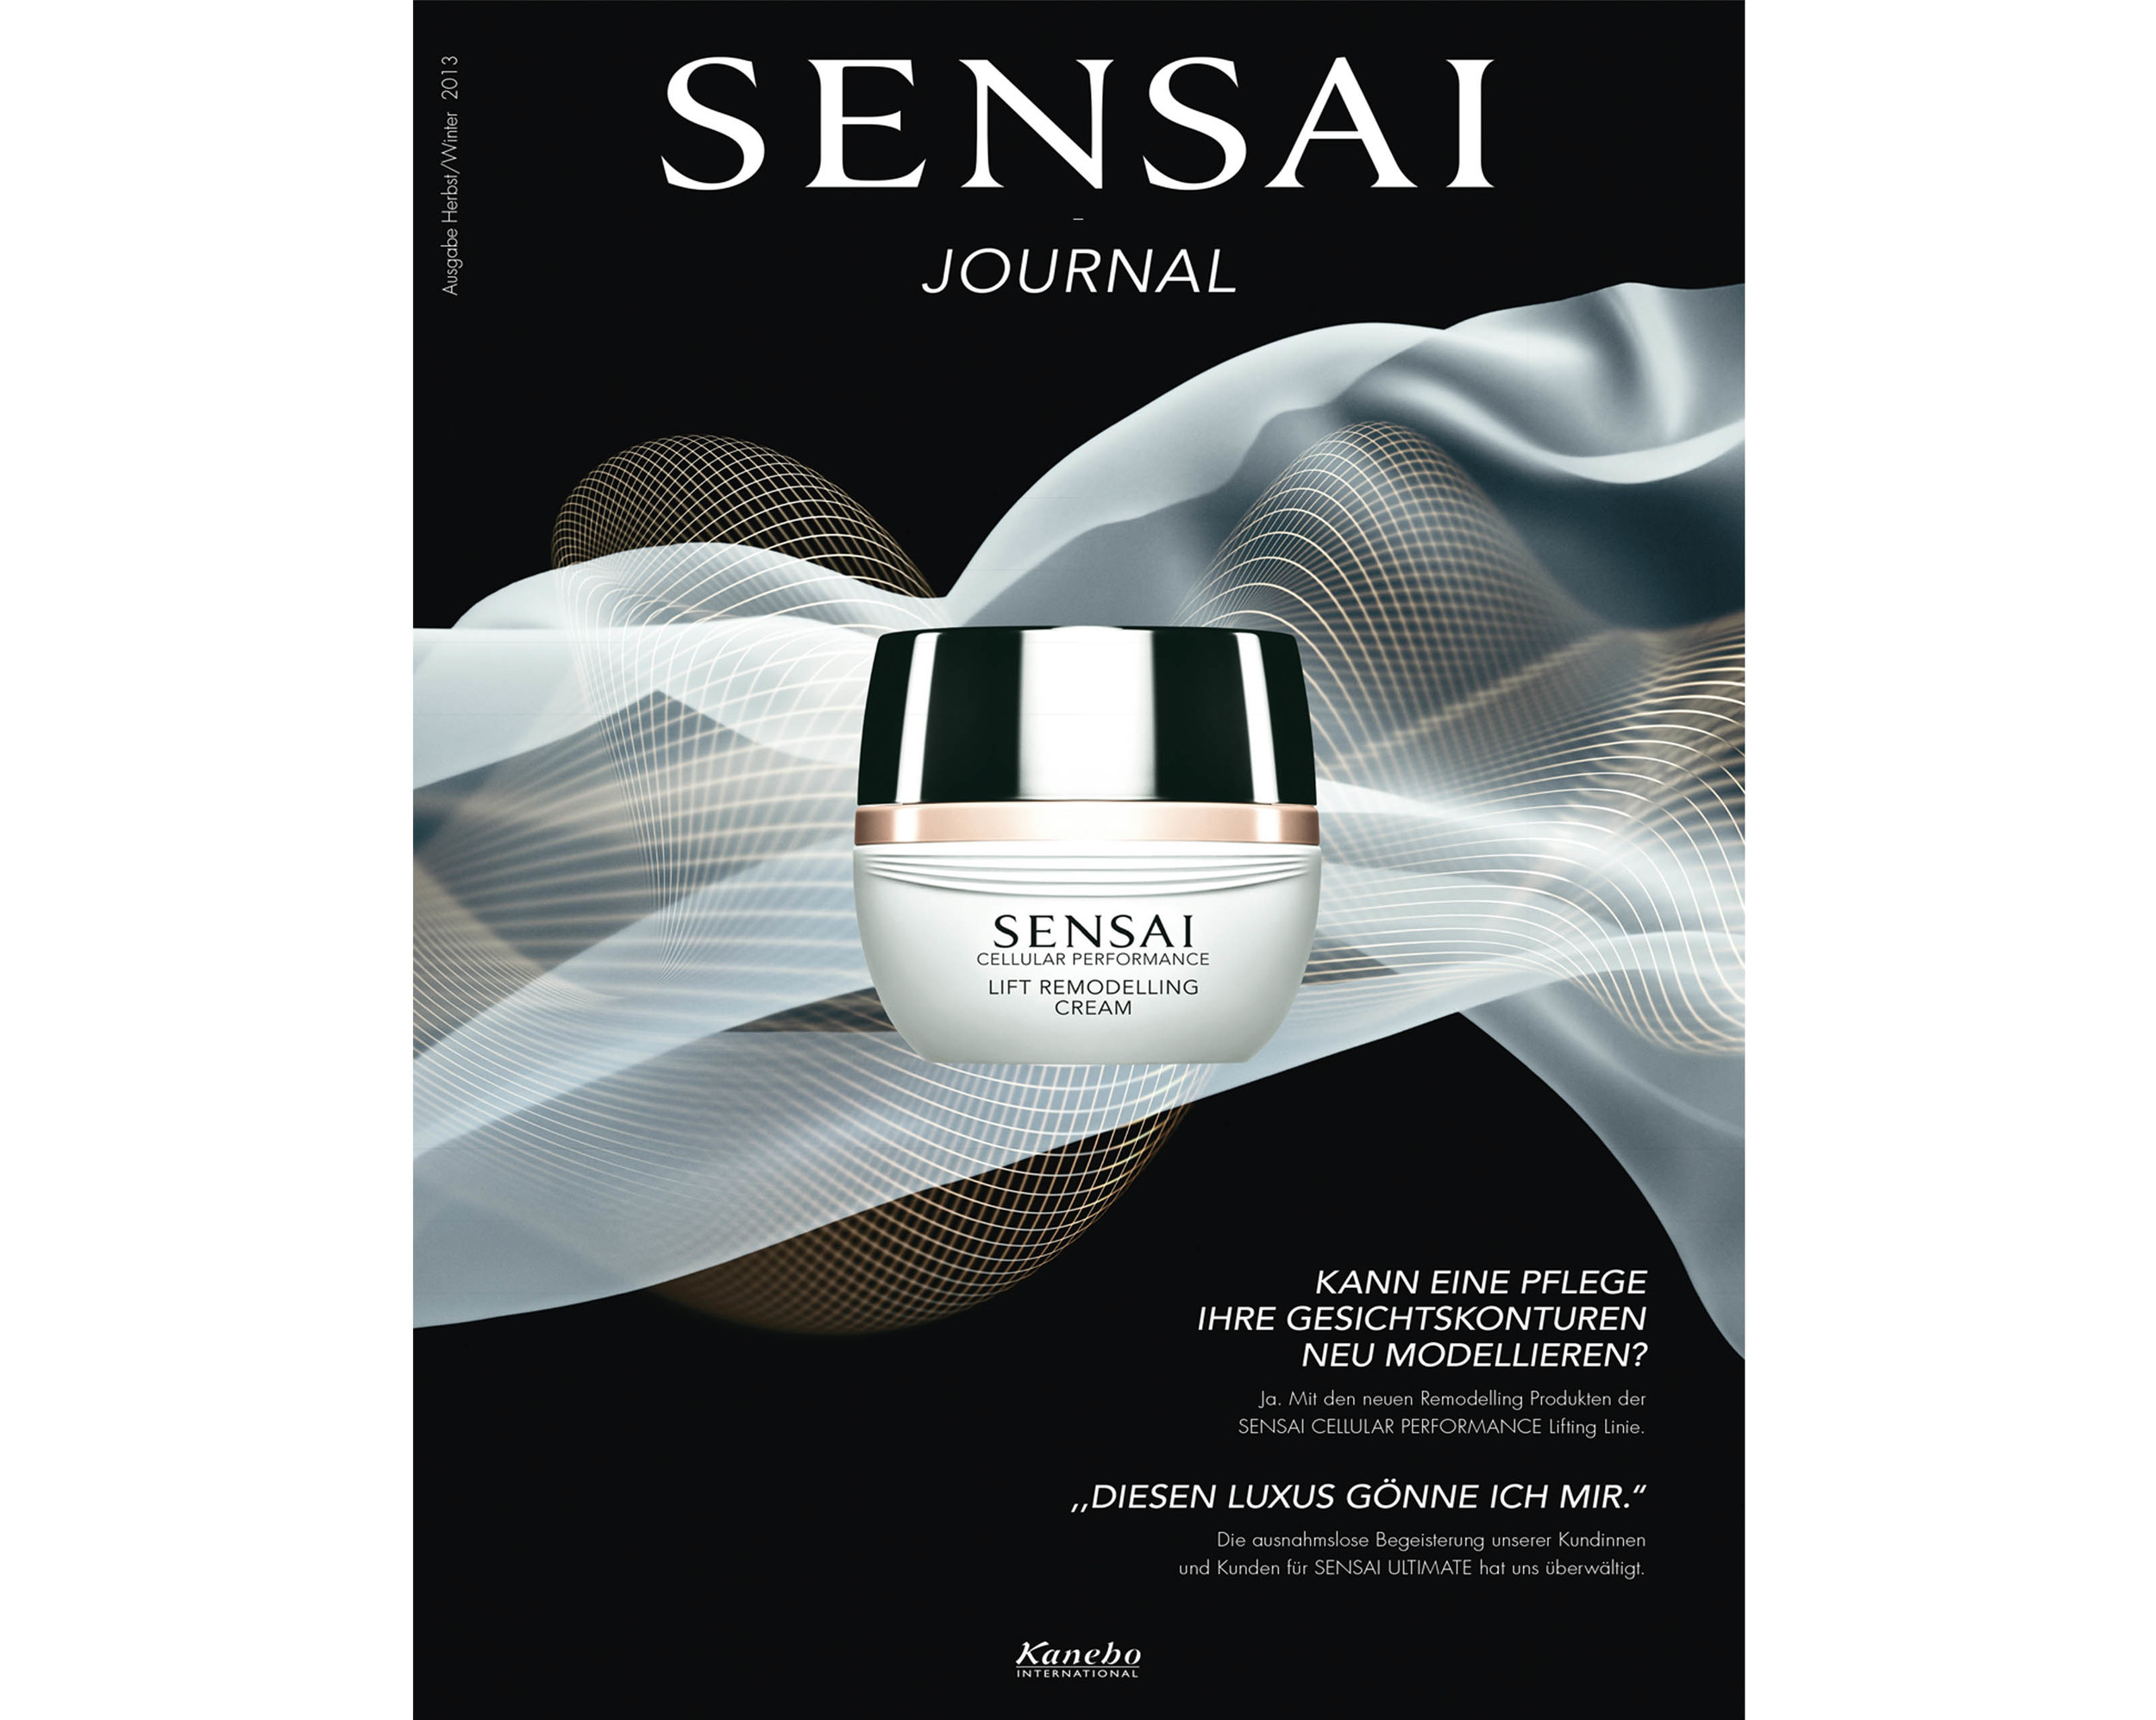 Sensai_journal_cover_06.jpg